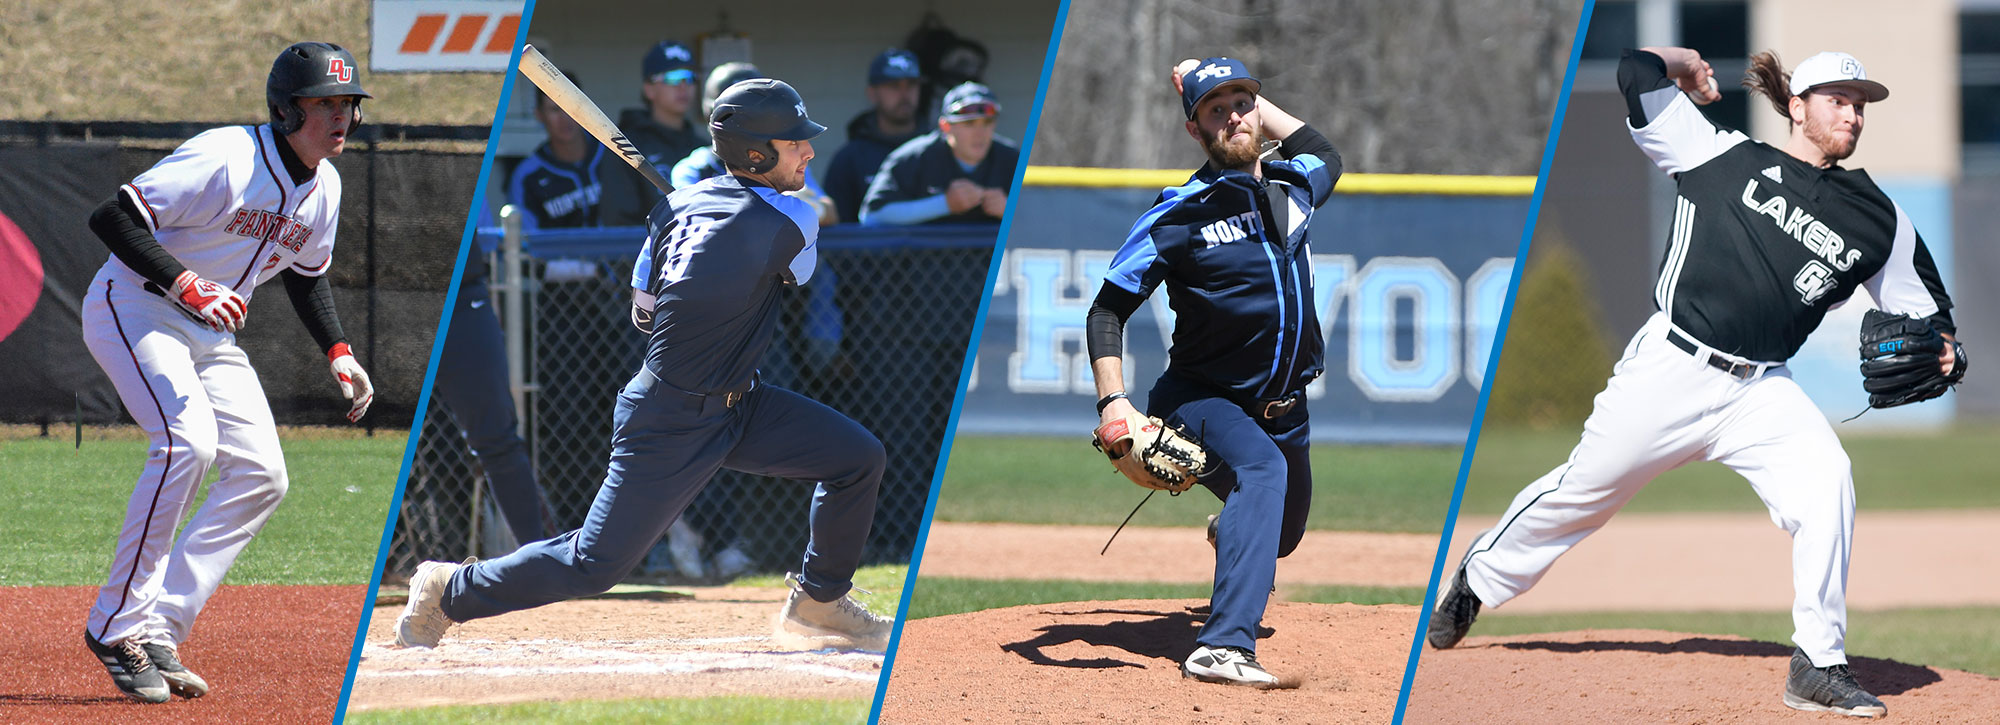 Ten Standouts Named NCBWA All-Region; Northwood's Jandron Pitcher of the Year